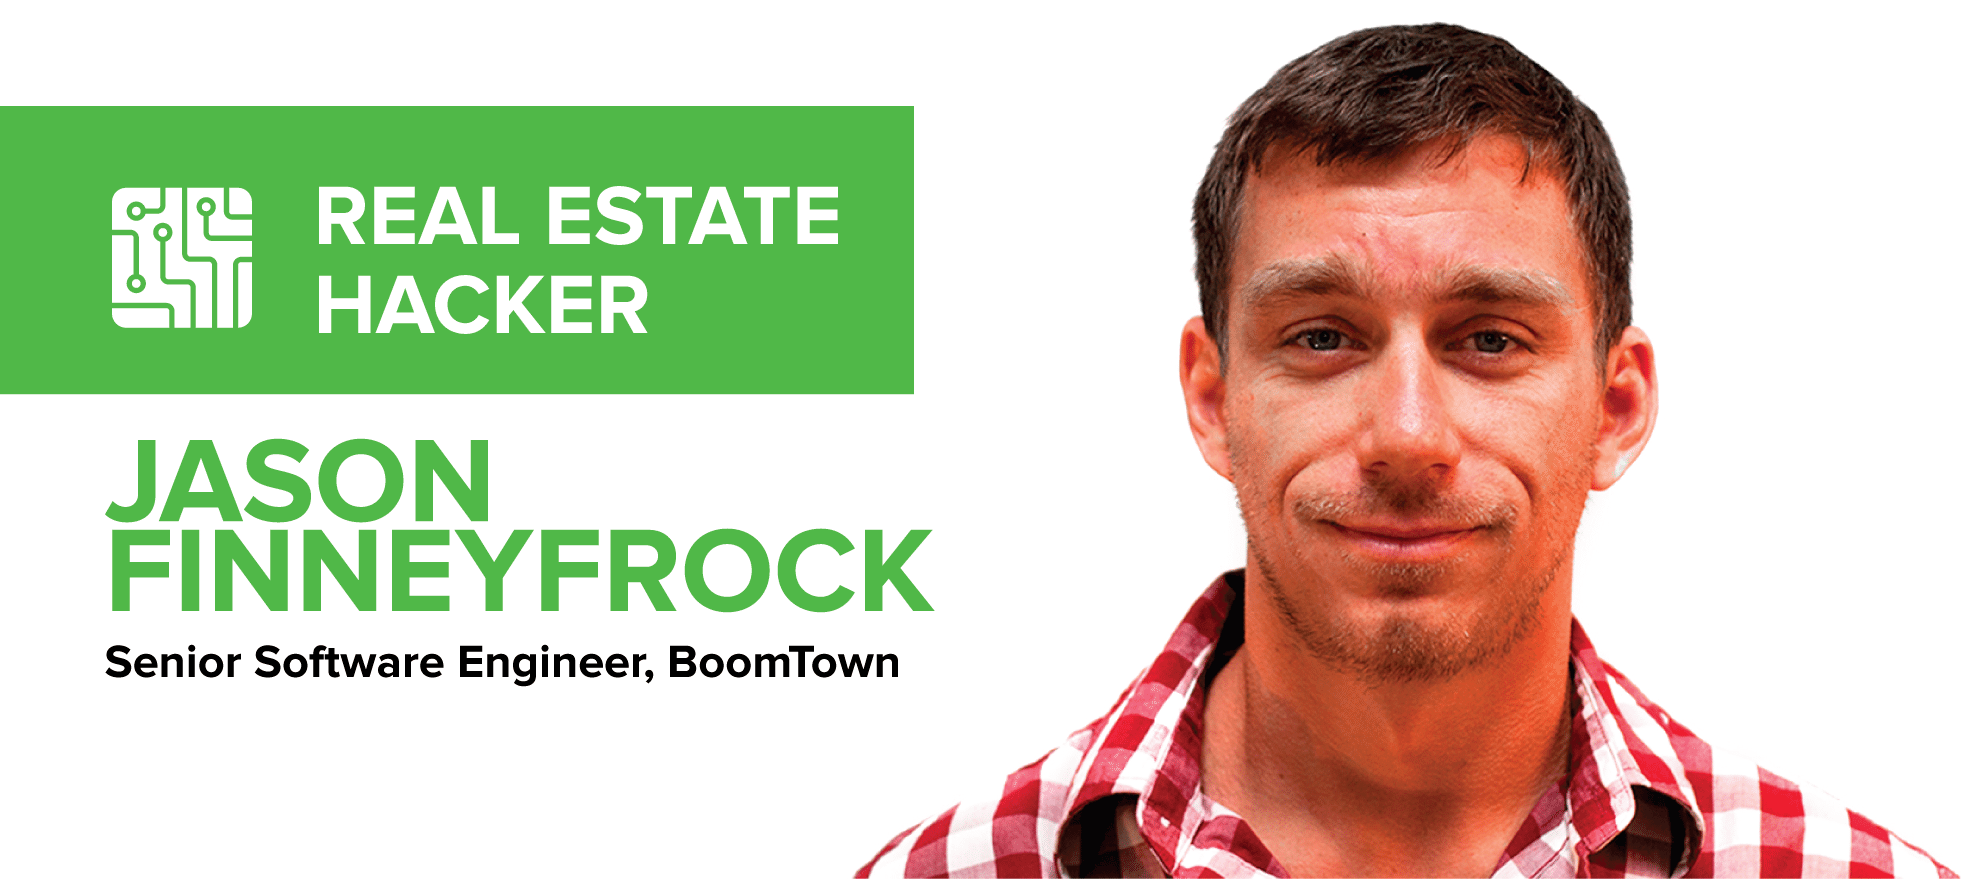 Massaging the pain points: Jason Finneyfrock, real estate hacker